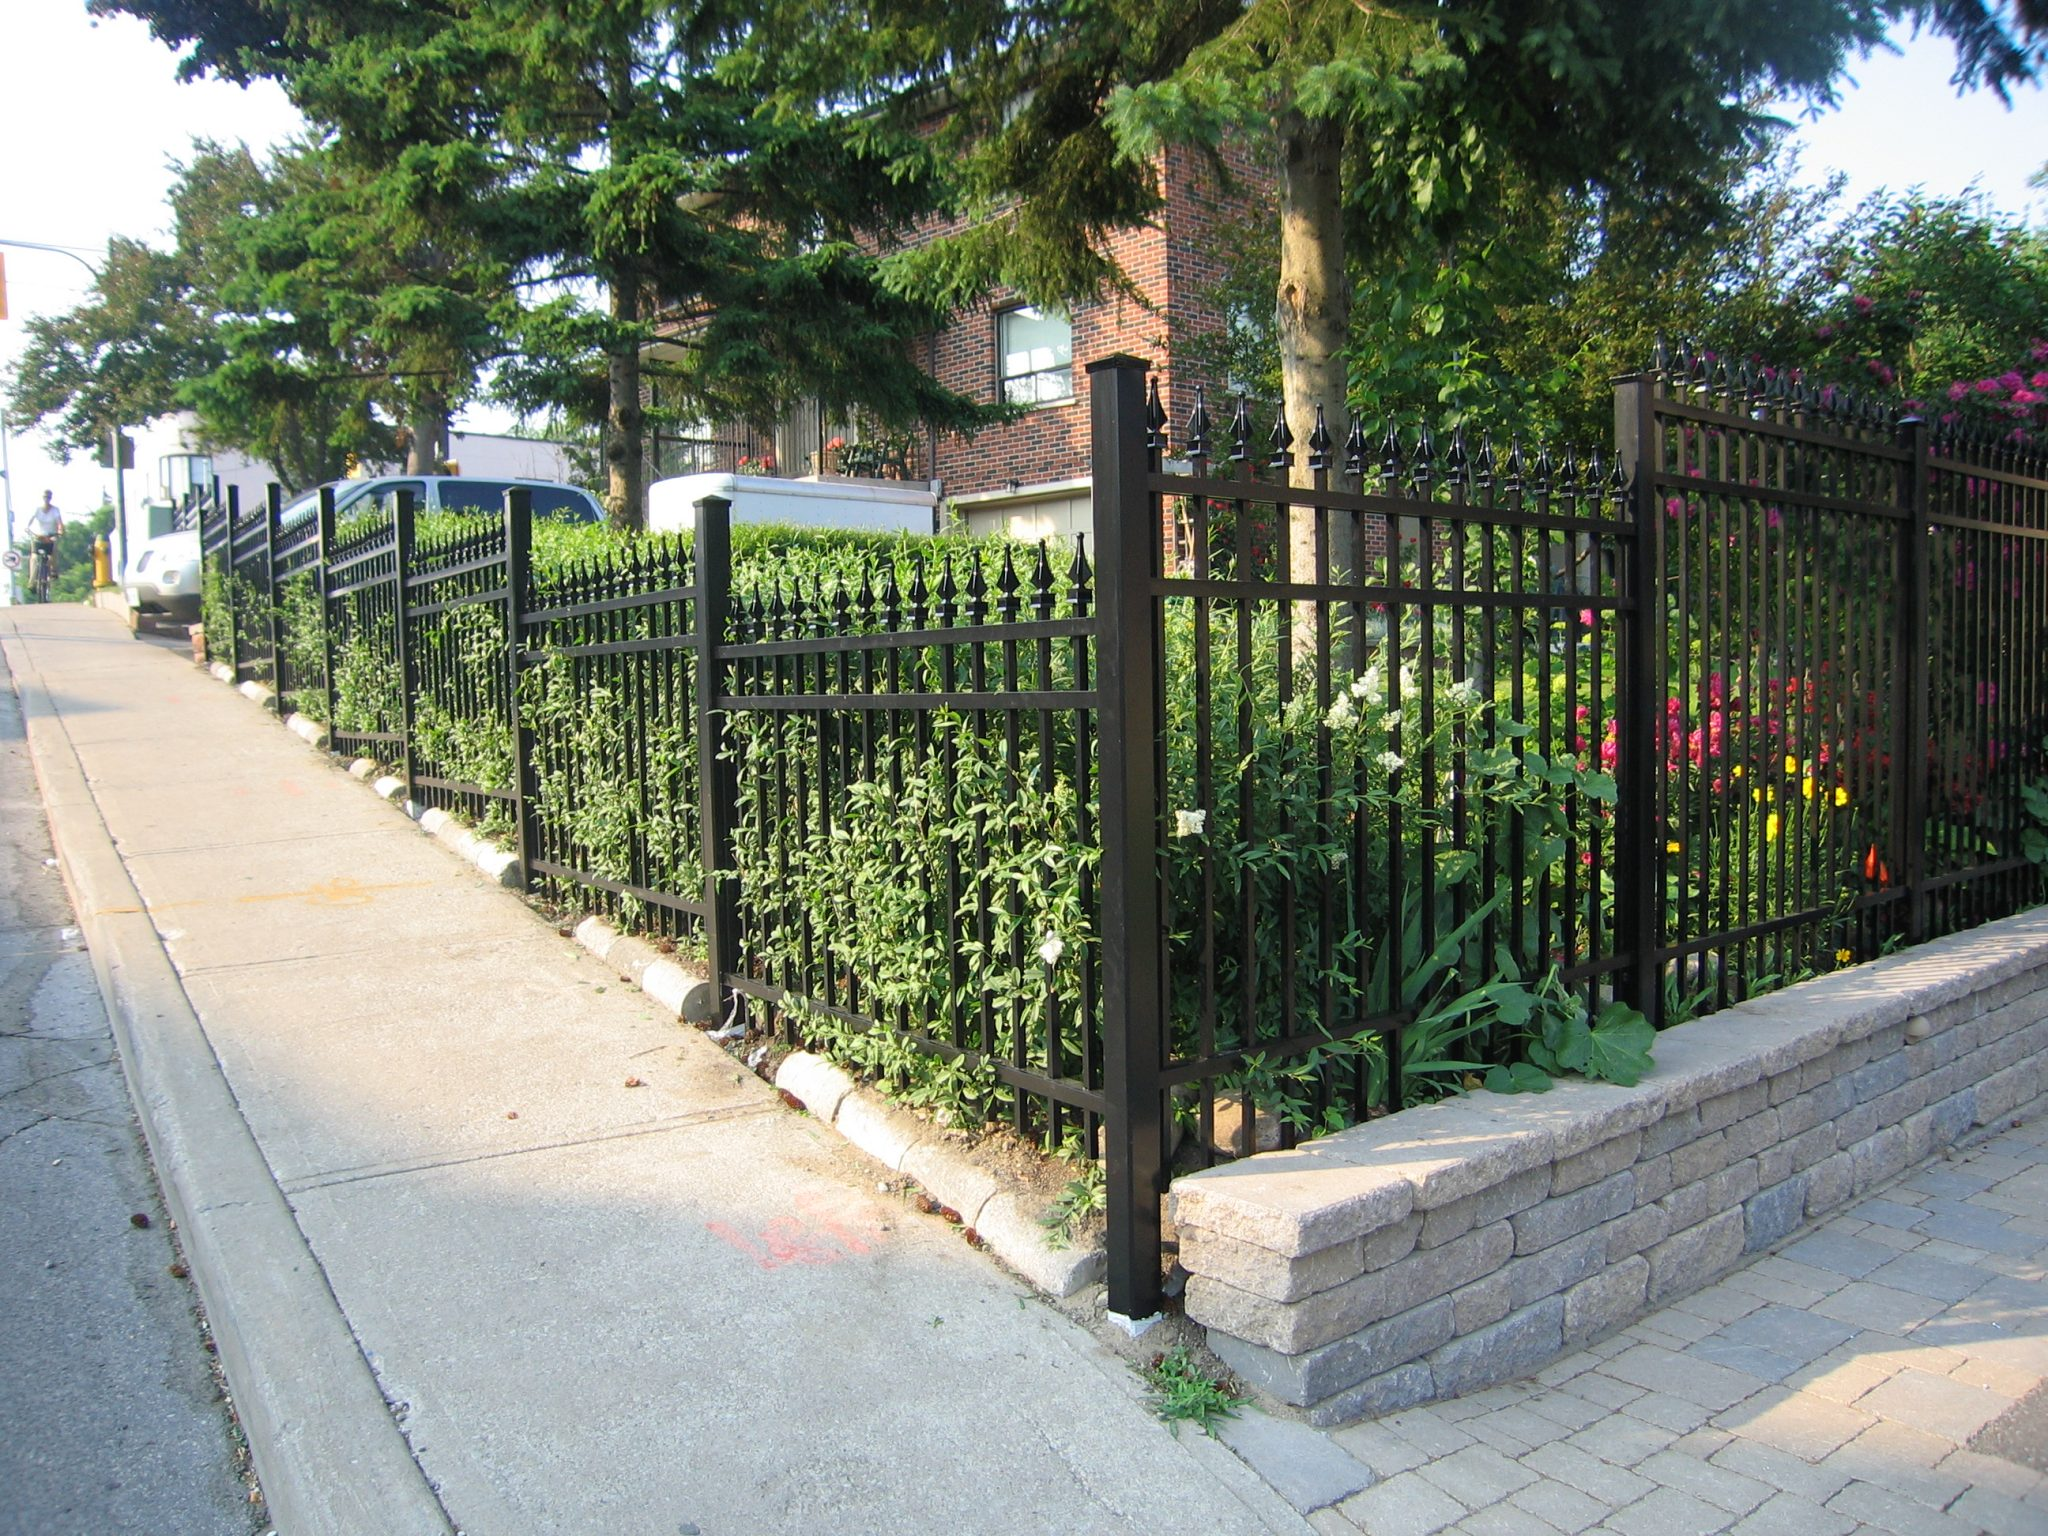 Stone bricks under black picket fence